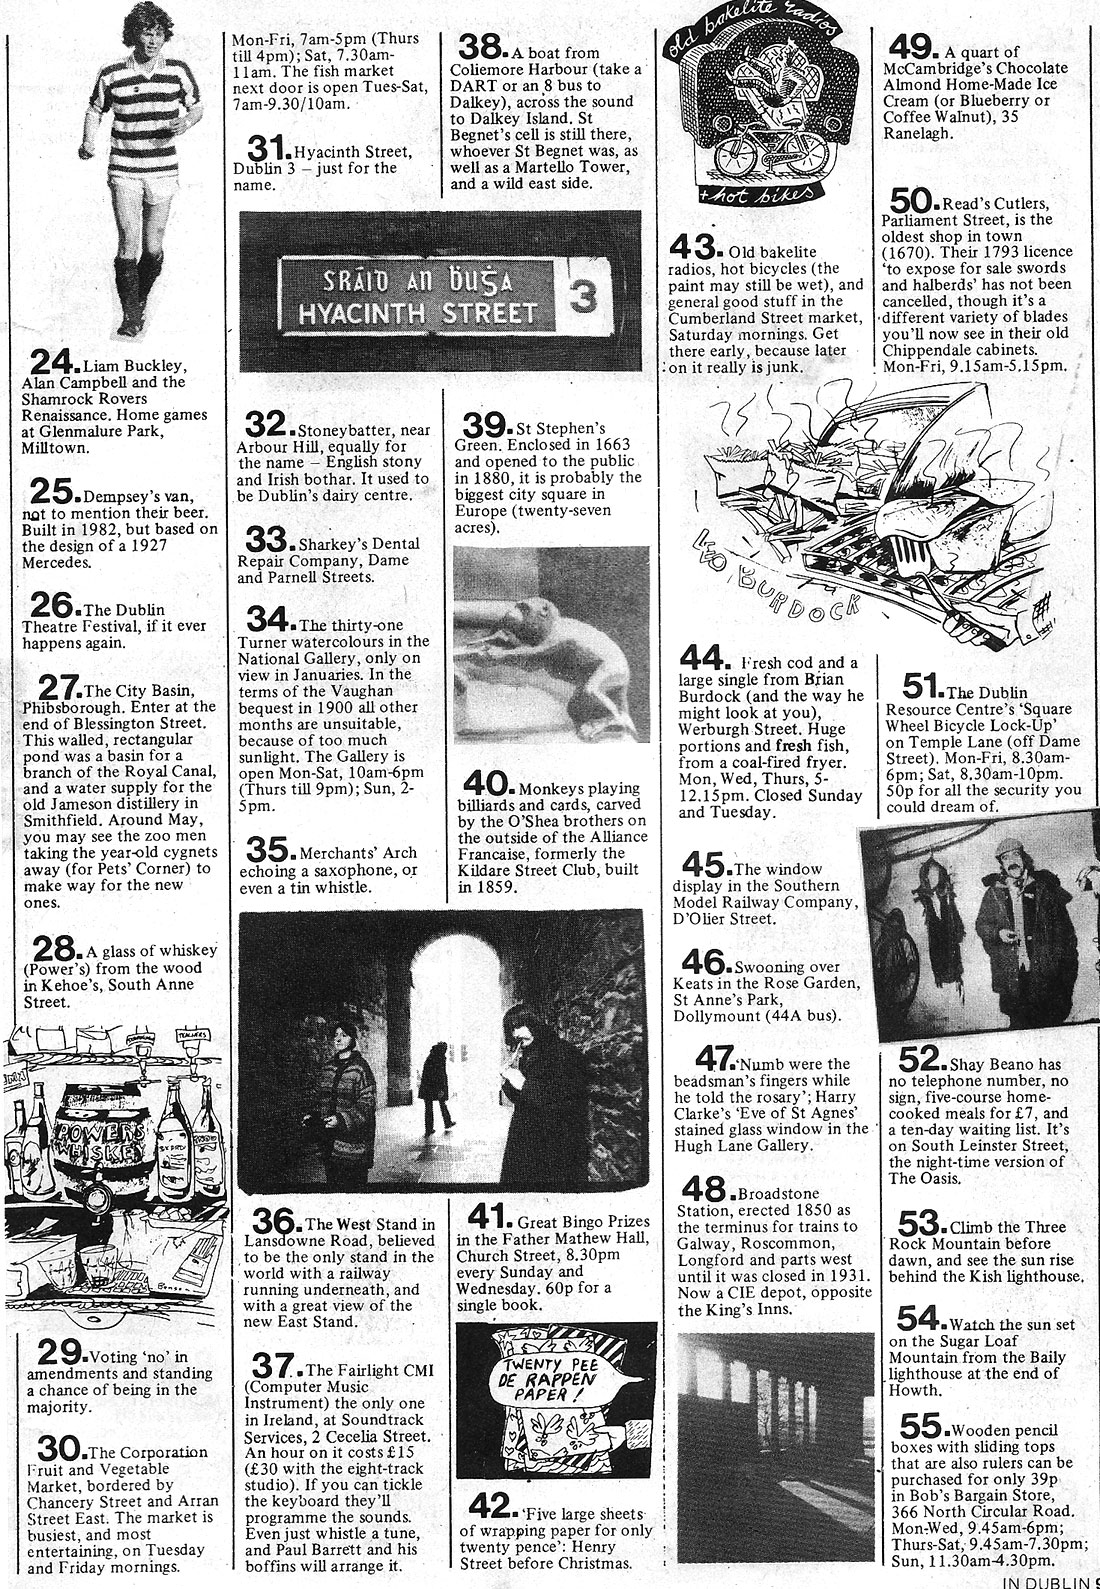 in dublin magazine march 1984 200 reasons to stay in dublin 24_56